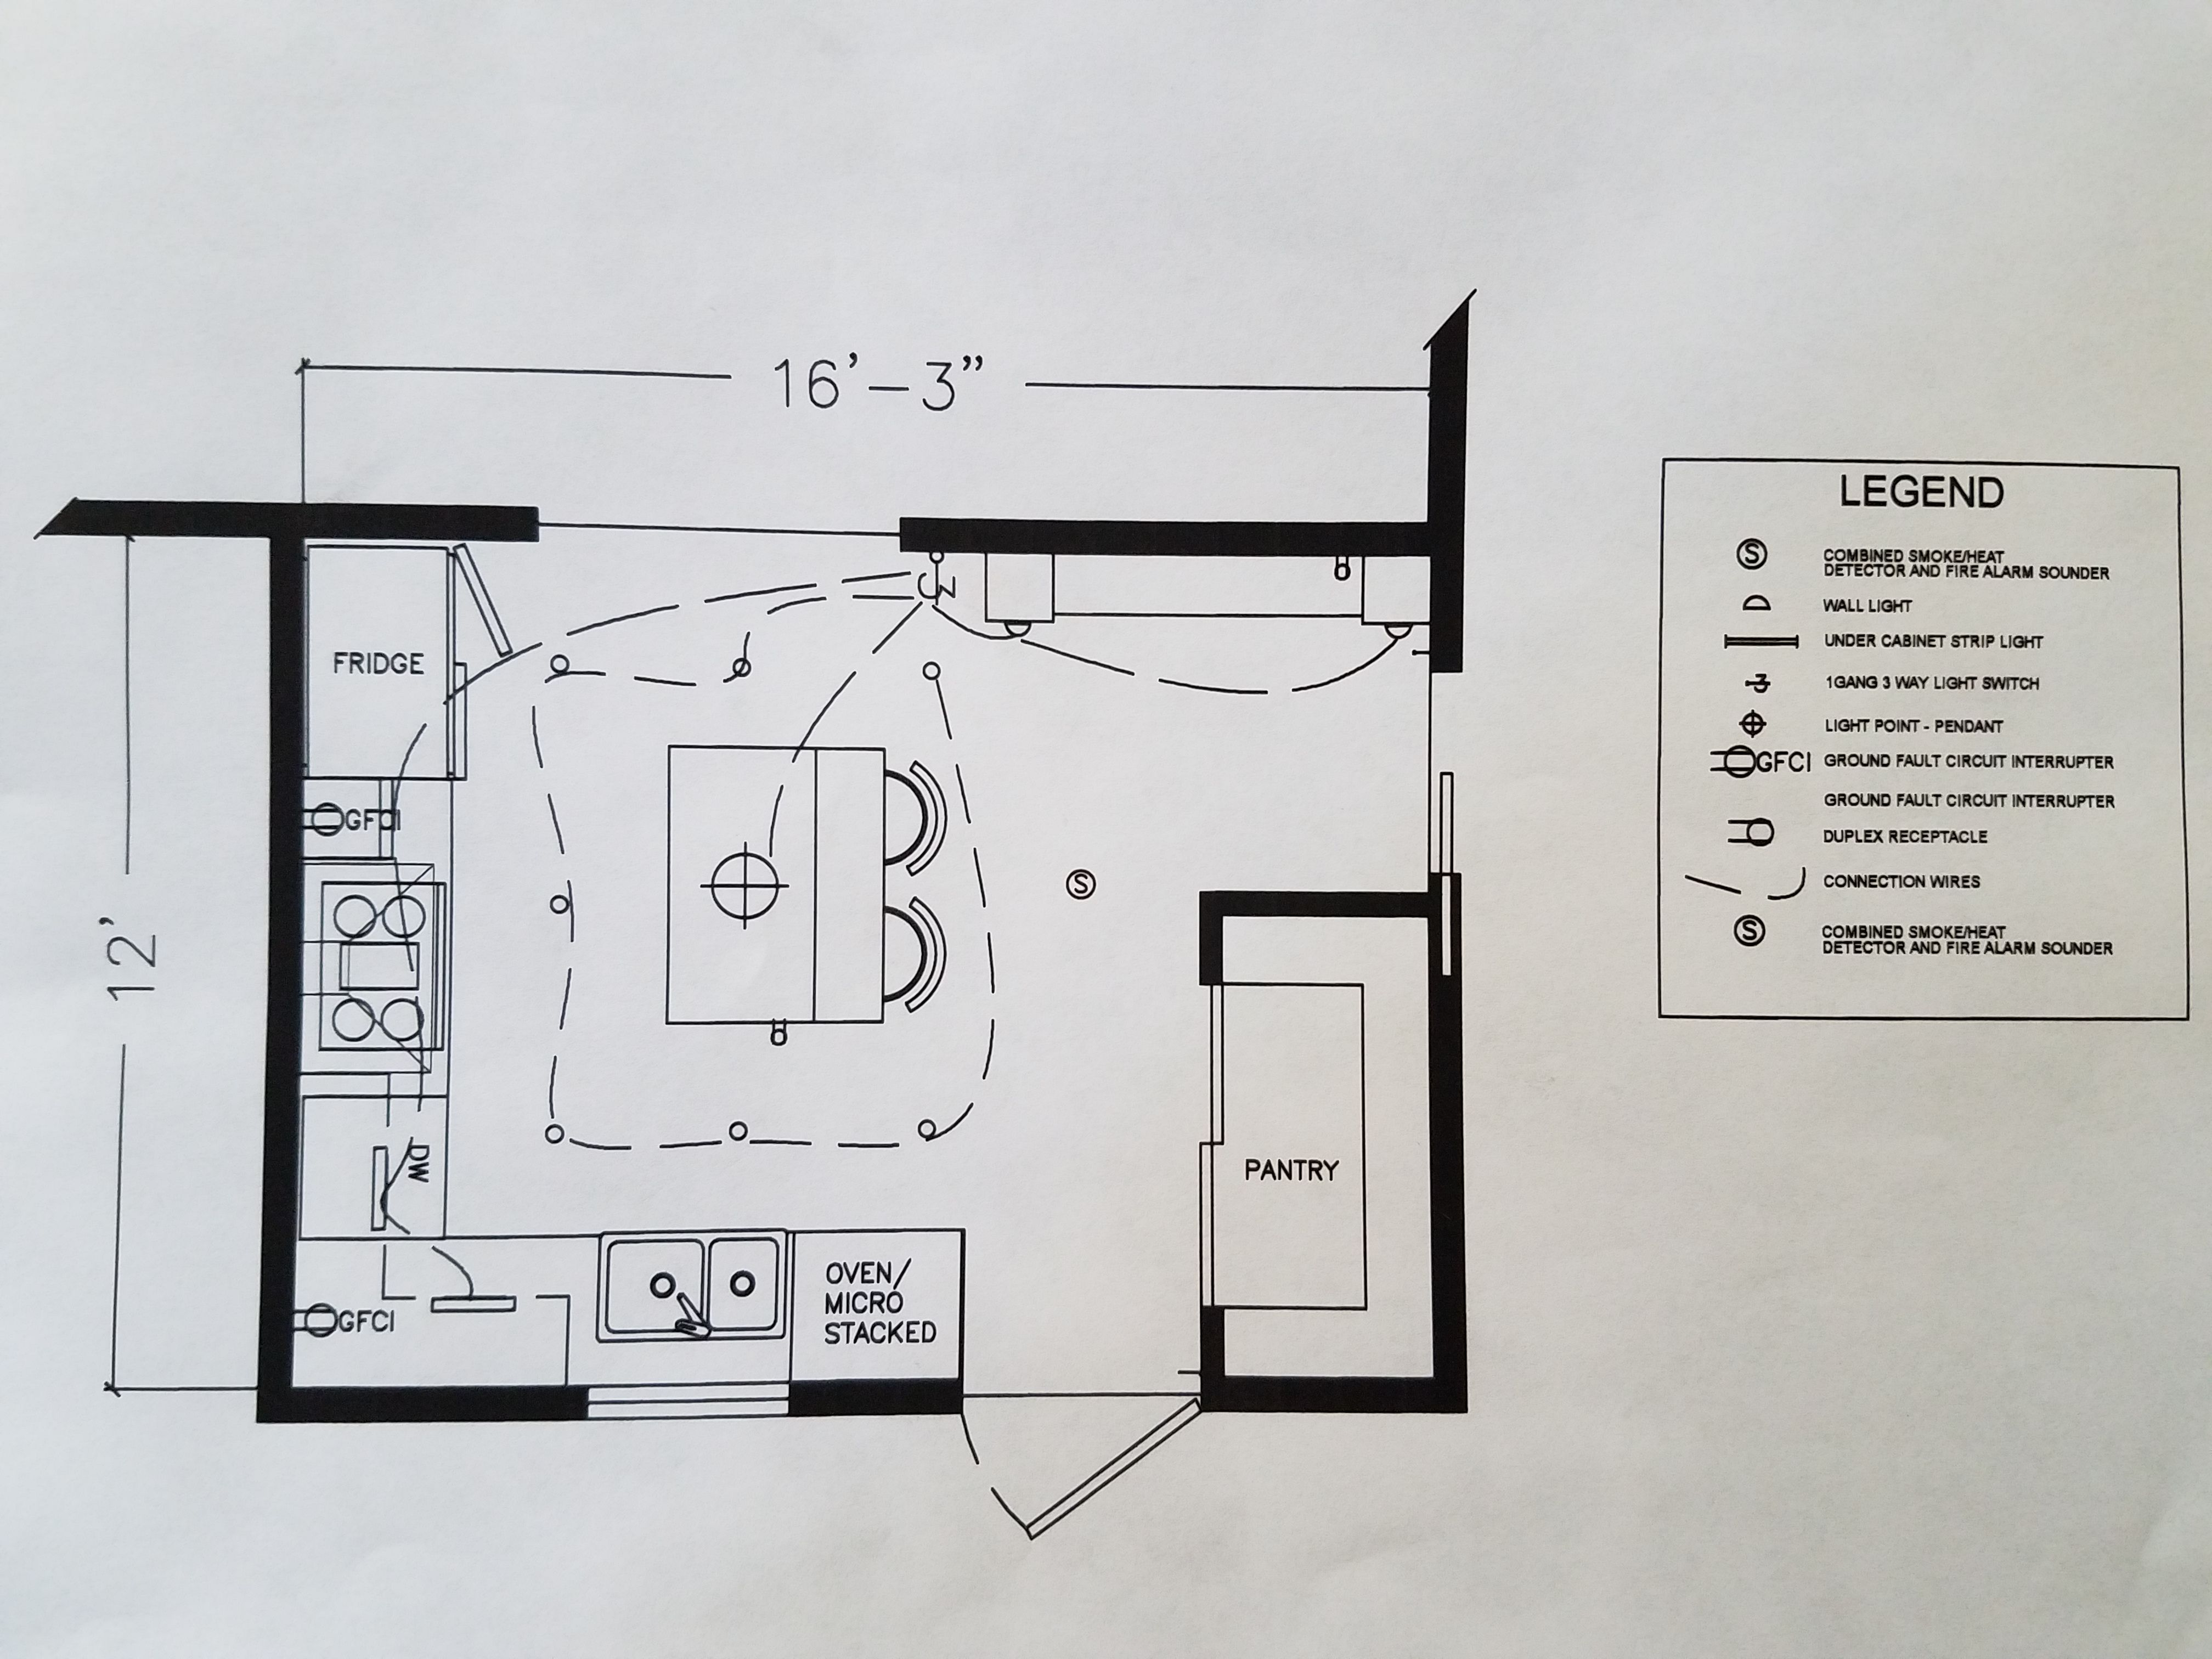 Kitchen Electrical Plan   Electrical plan, Project r, How ...